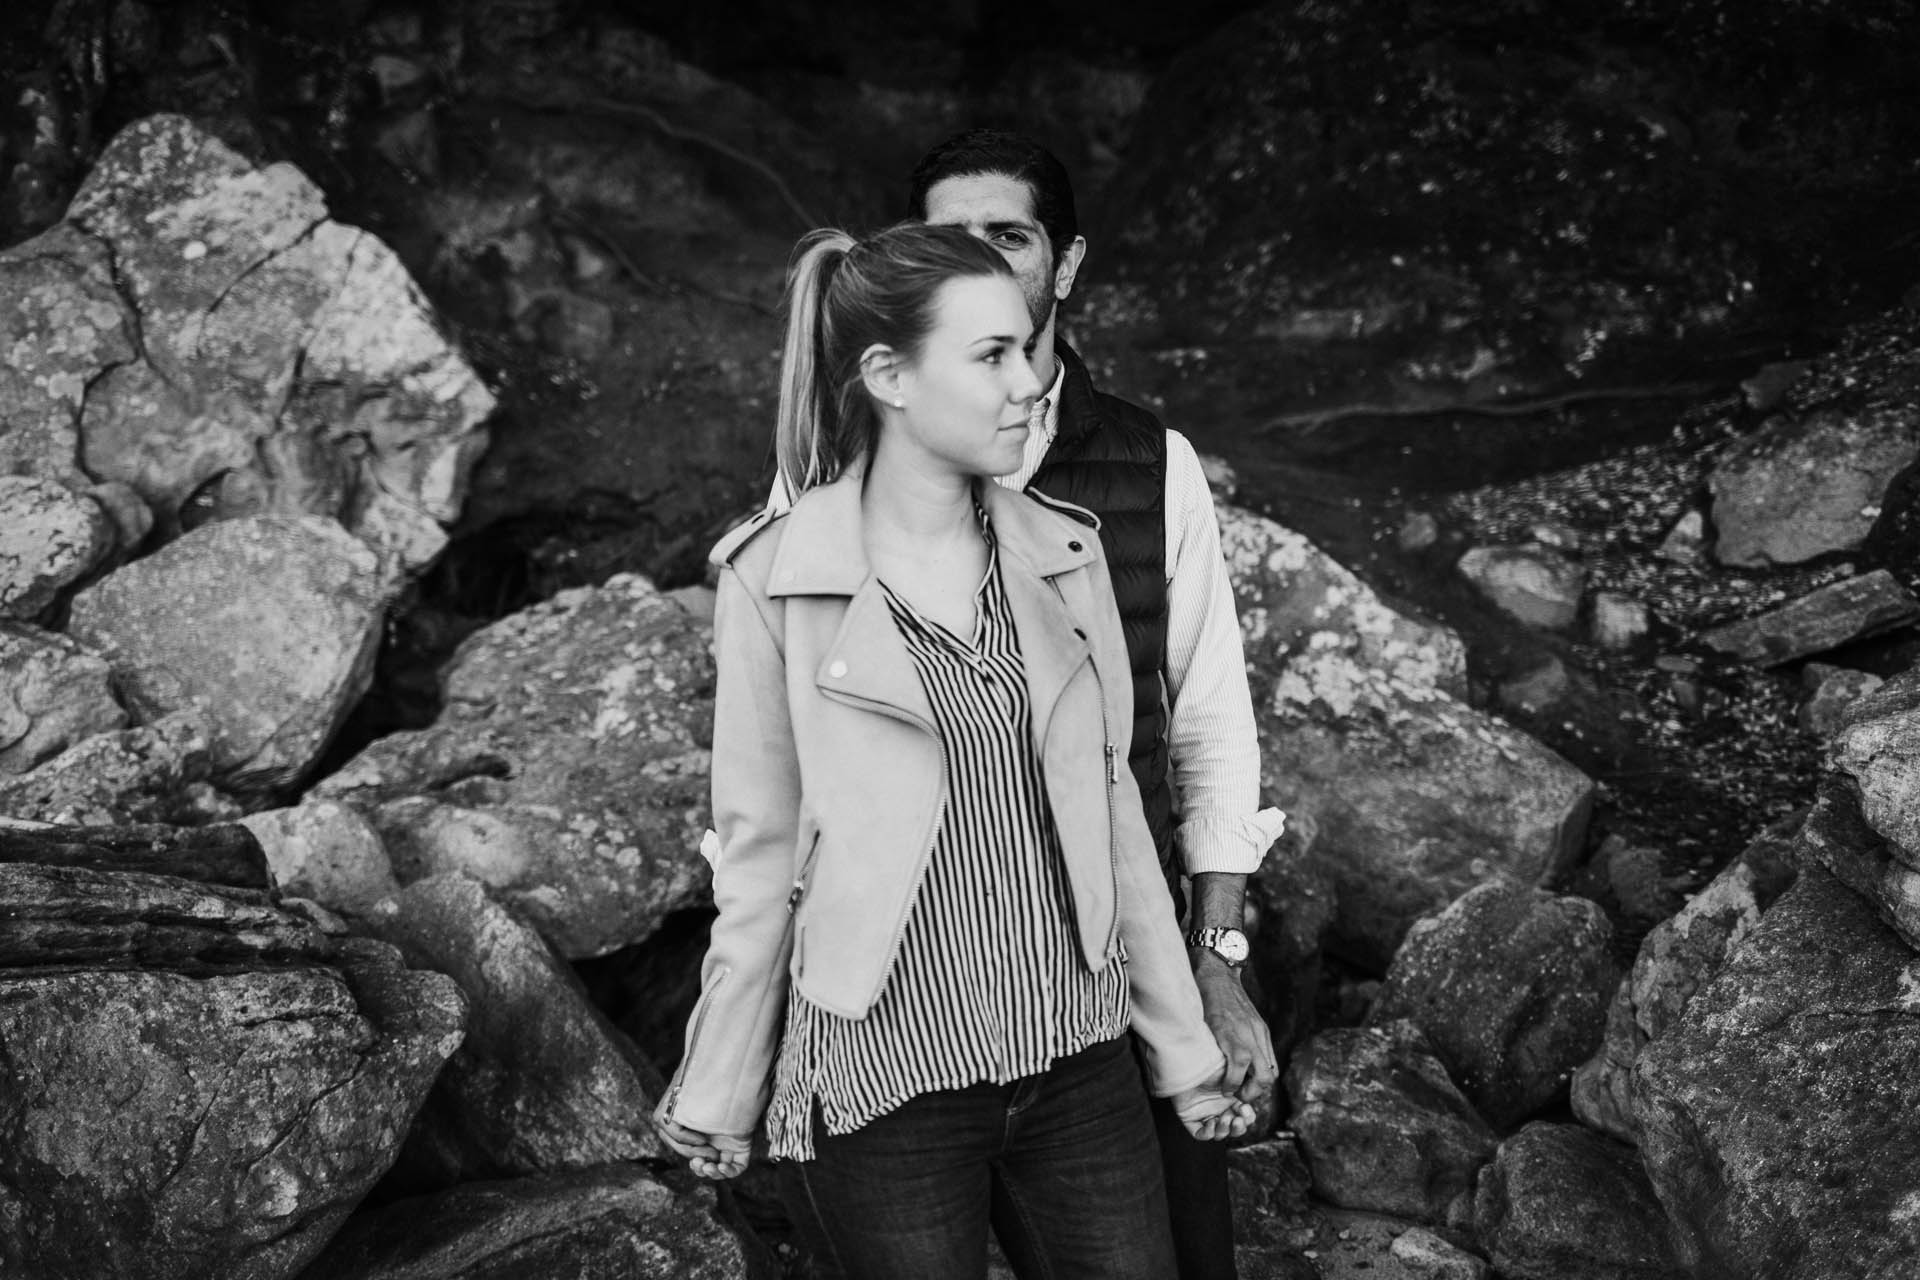 séance_engagement_noirmoutier_flavie_nelly_photographe_nantes-16